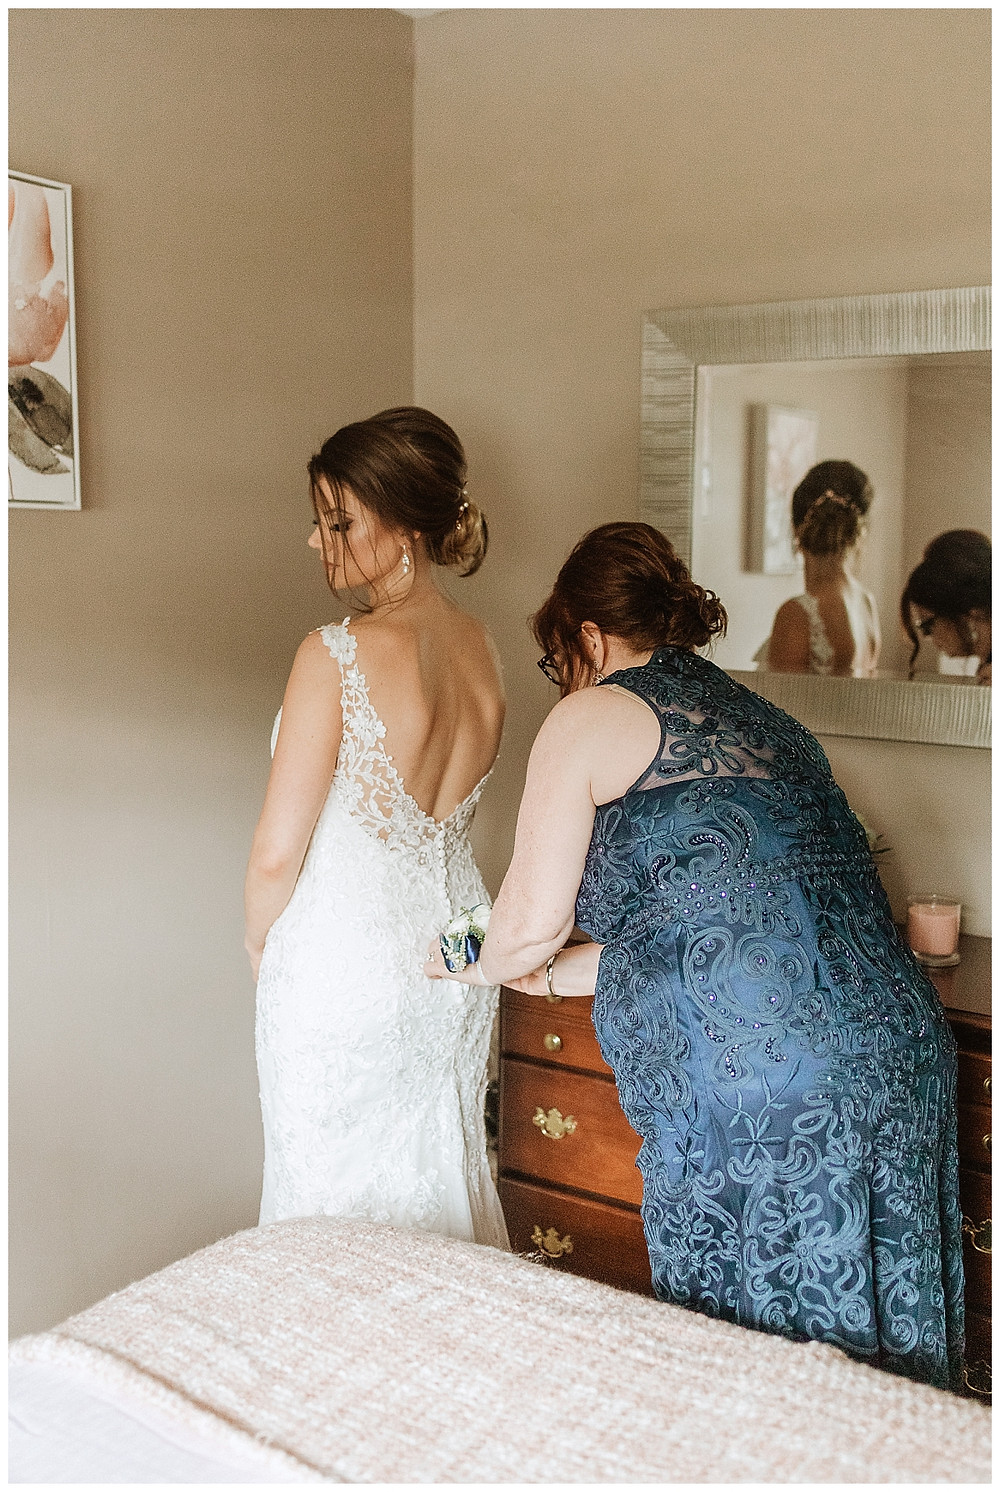 Bride Getting Ready Portraits